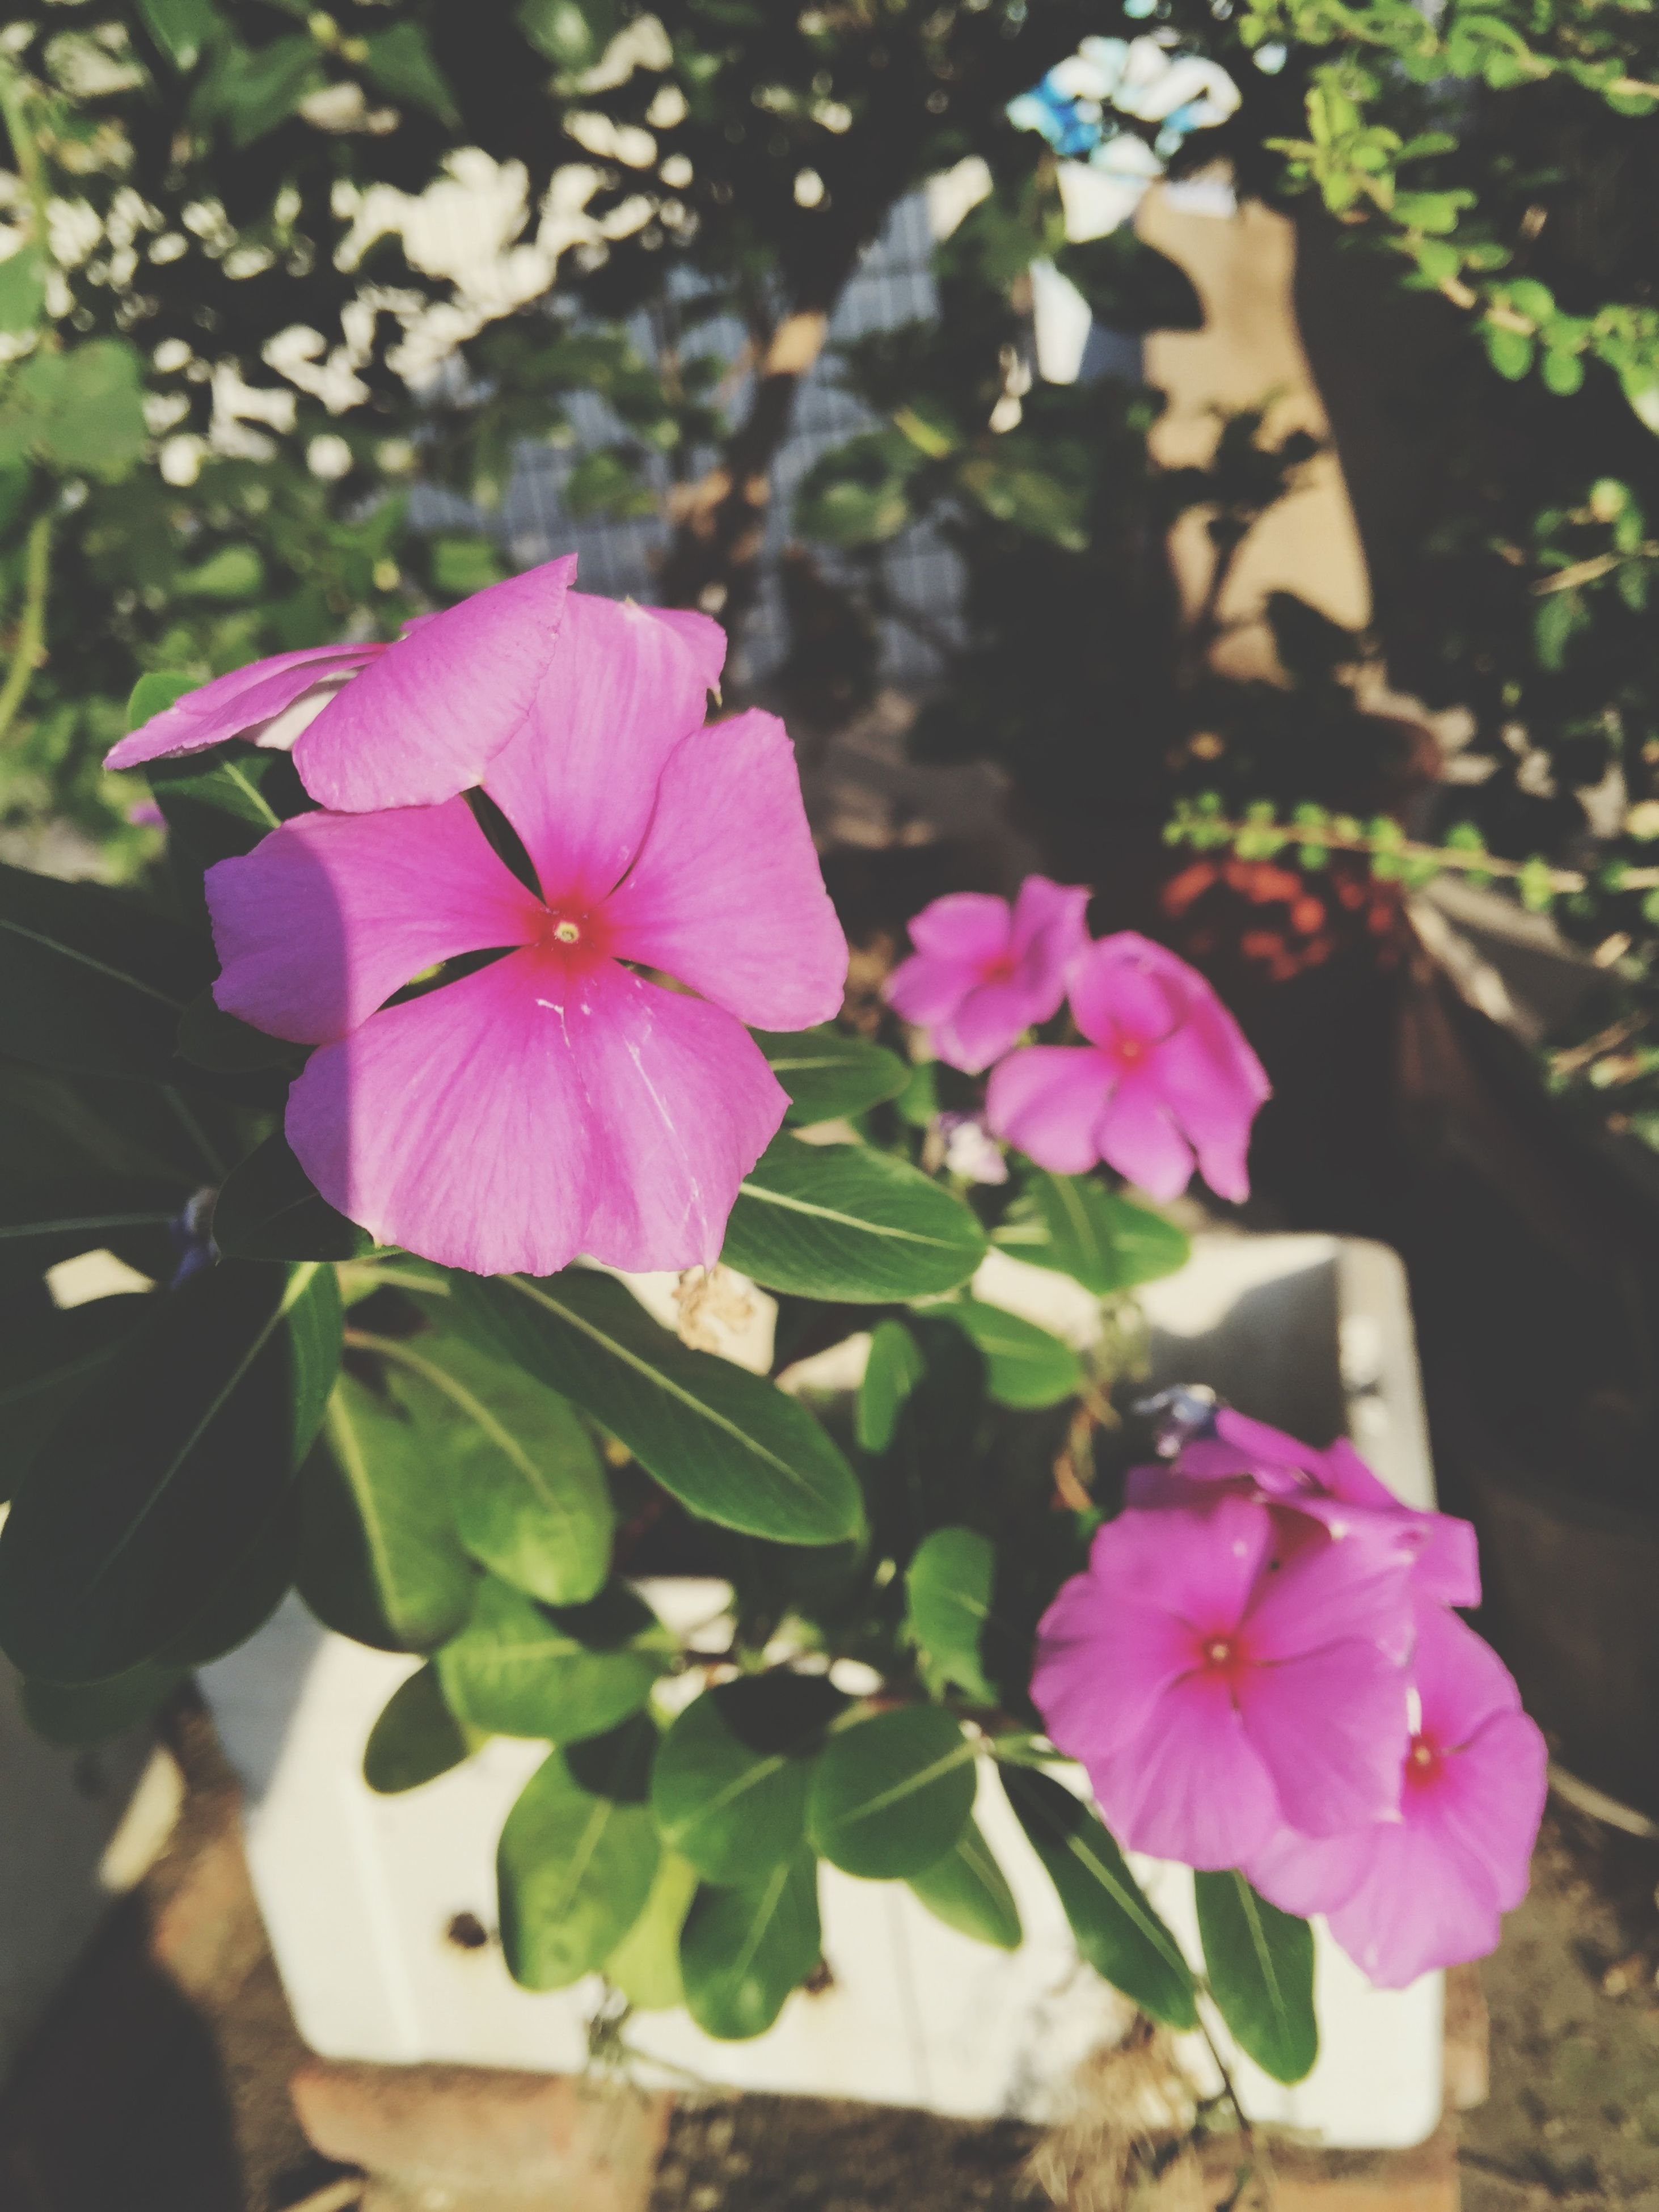 flower, freshness, petal, fragility, flower head, growth, beauty in nature, pink color, blooming, close-up, nature, focus on foreground, purple, plant, in bloom, blossom, day, pollen, outdoors, no people